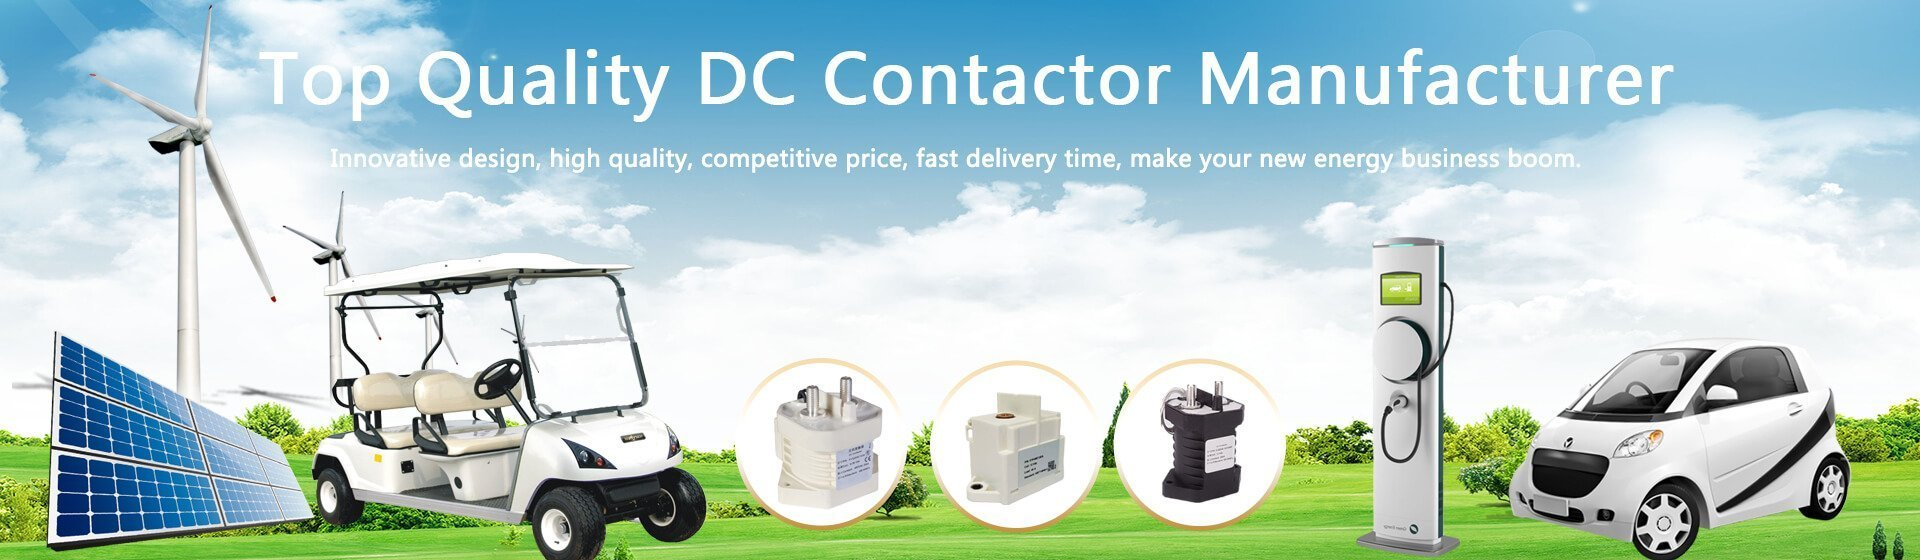 DC Contactor/relay manufacturer for electric vehicles and charging